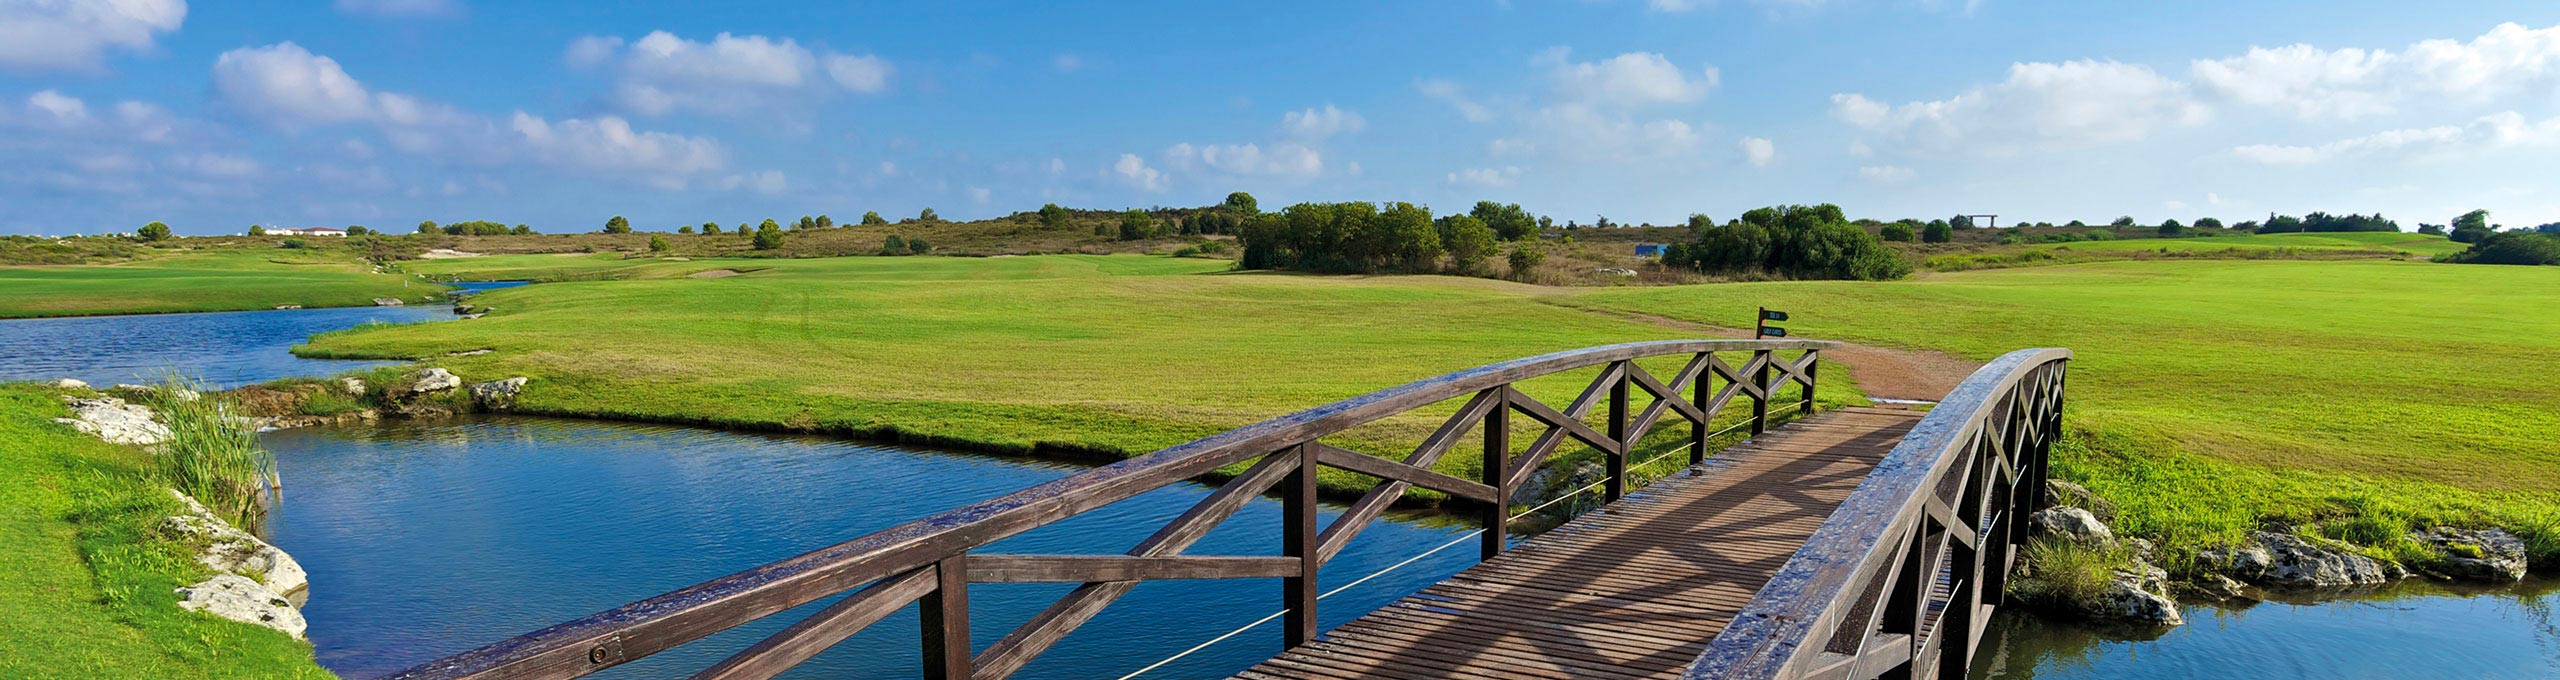 ACAYA GOLF & SPA RESORT